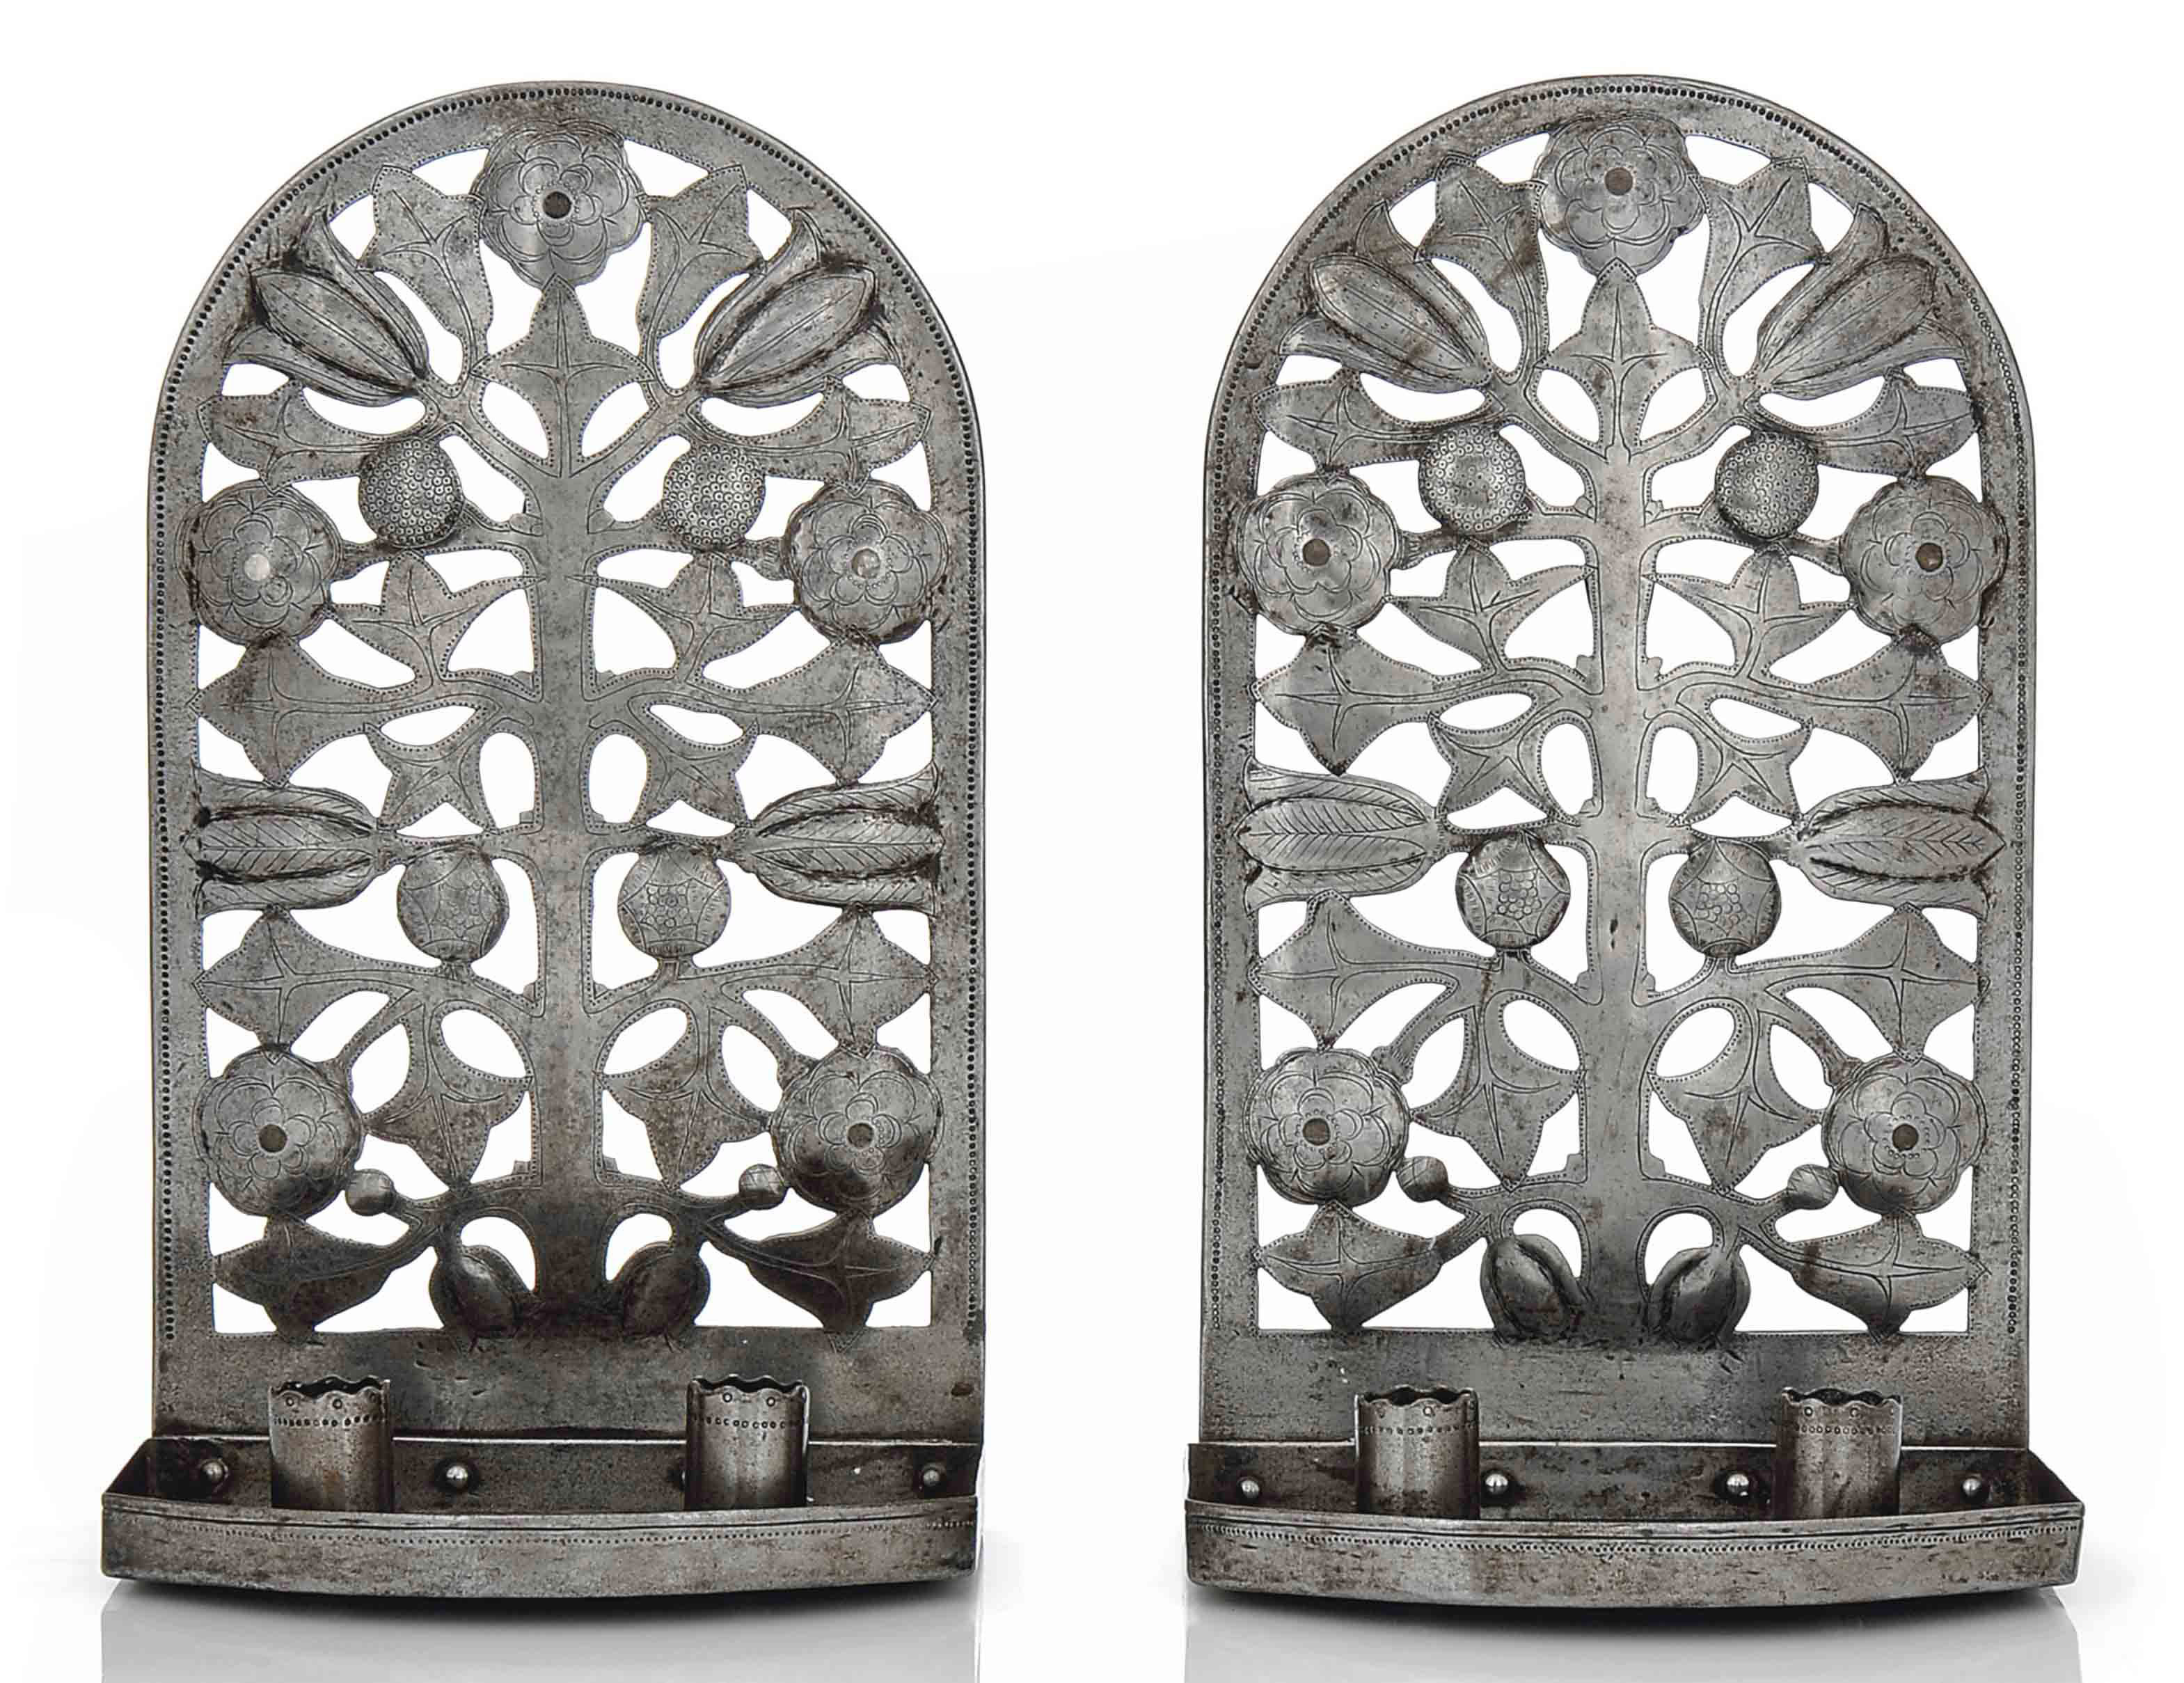 A PAIR OF ARTS & CRAFTS WALL SCONCES DESIGNED BY ERNEST GIMSON (1864-1919) AND EXECUTED BY ALFRED BUCKNELL